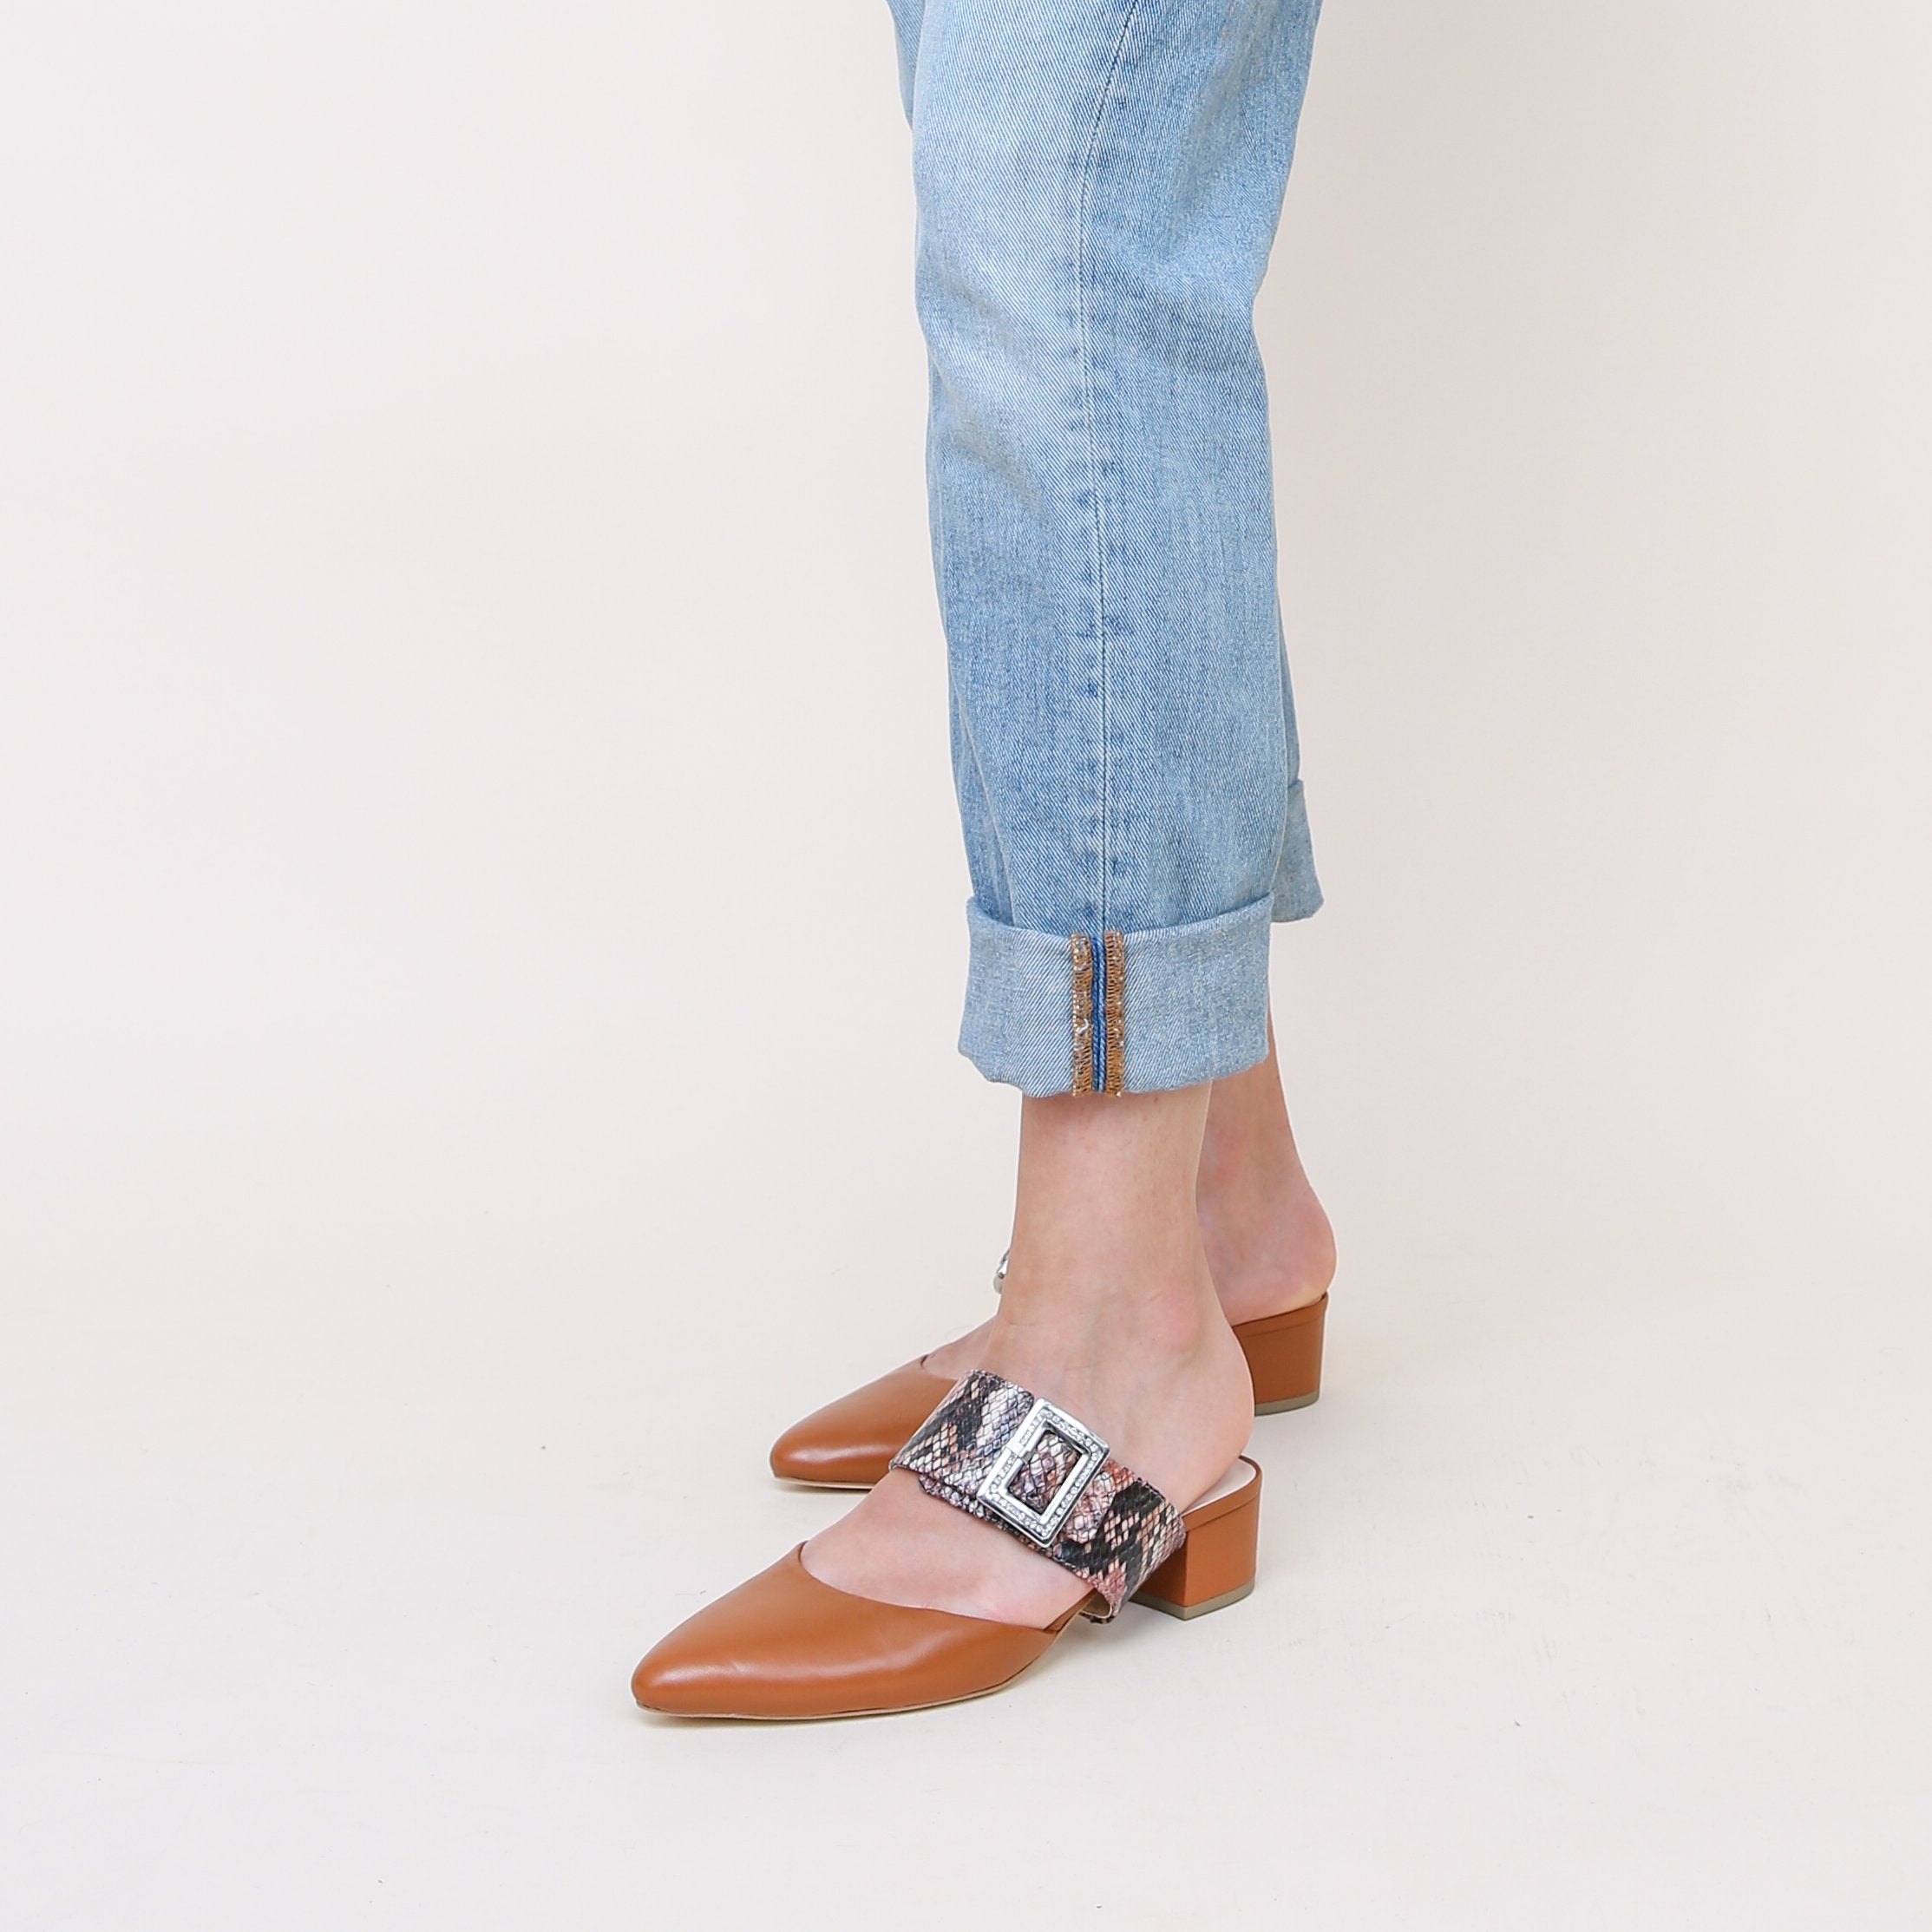 Grace in Rosy Boa Custom Shoe Straps | Alterre Make A Shoe - Sustainable Shoes & Ethical Footwear